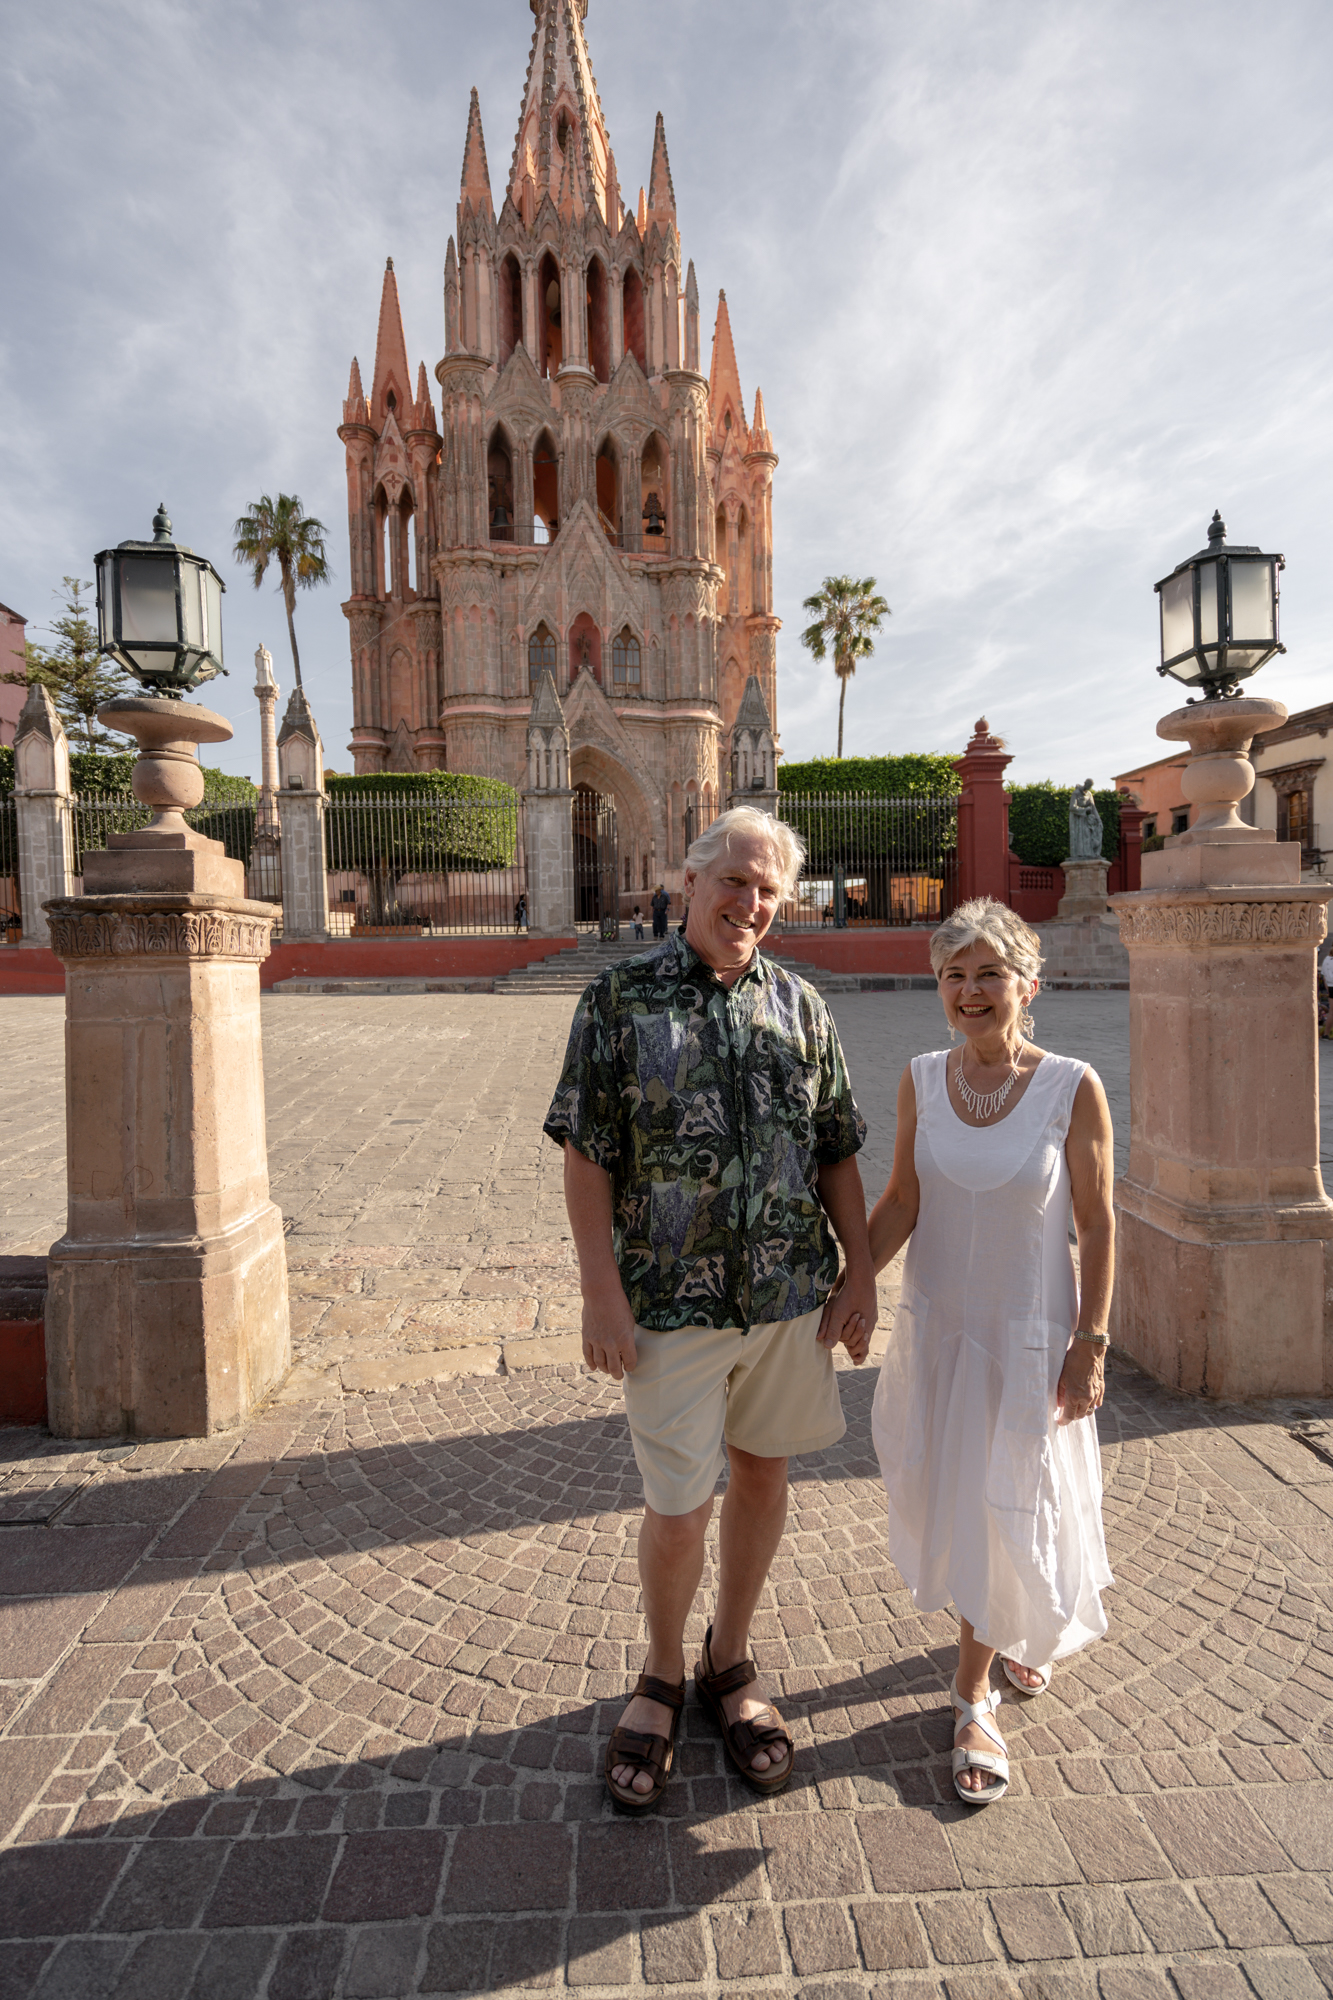 Photoshoot session in San Miguel de Allende with Suzanne and Leo-3.jpg